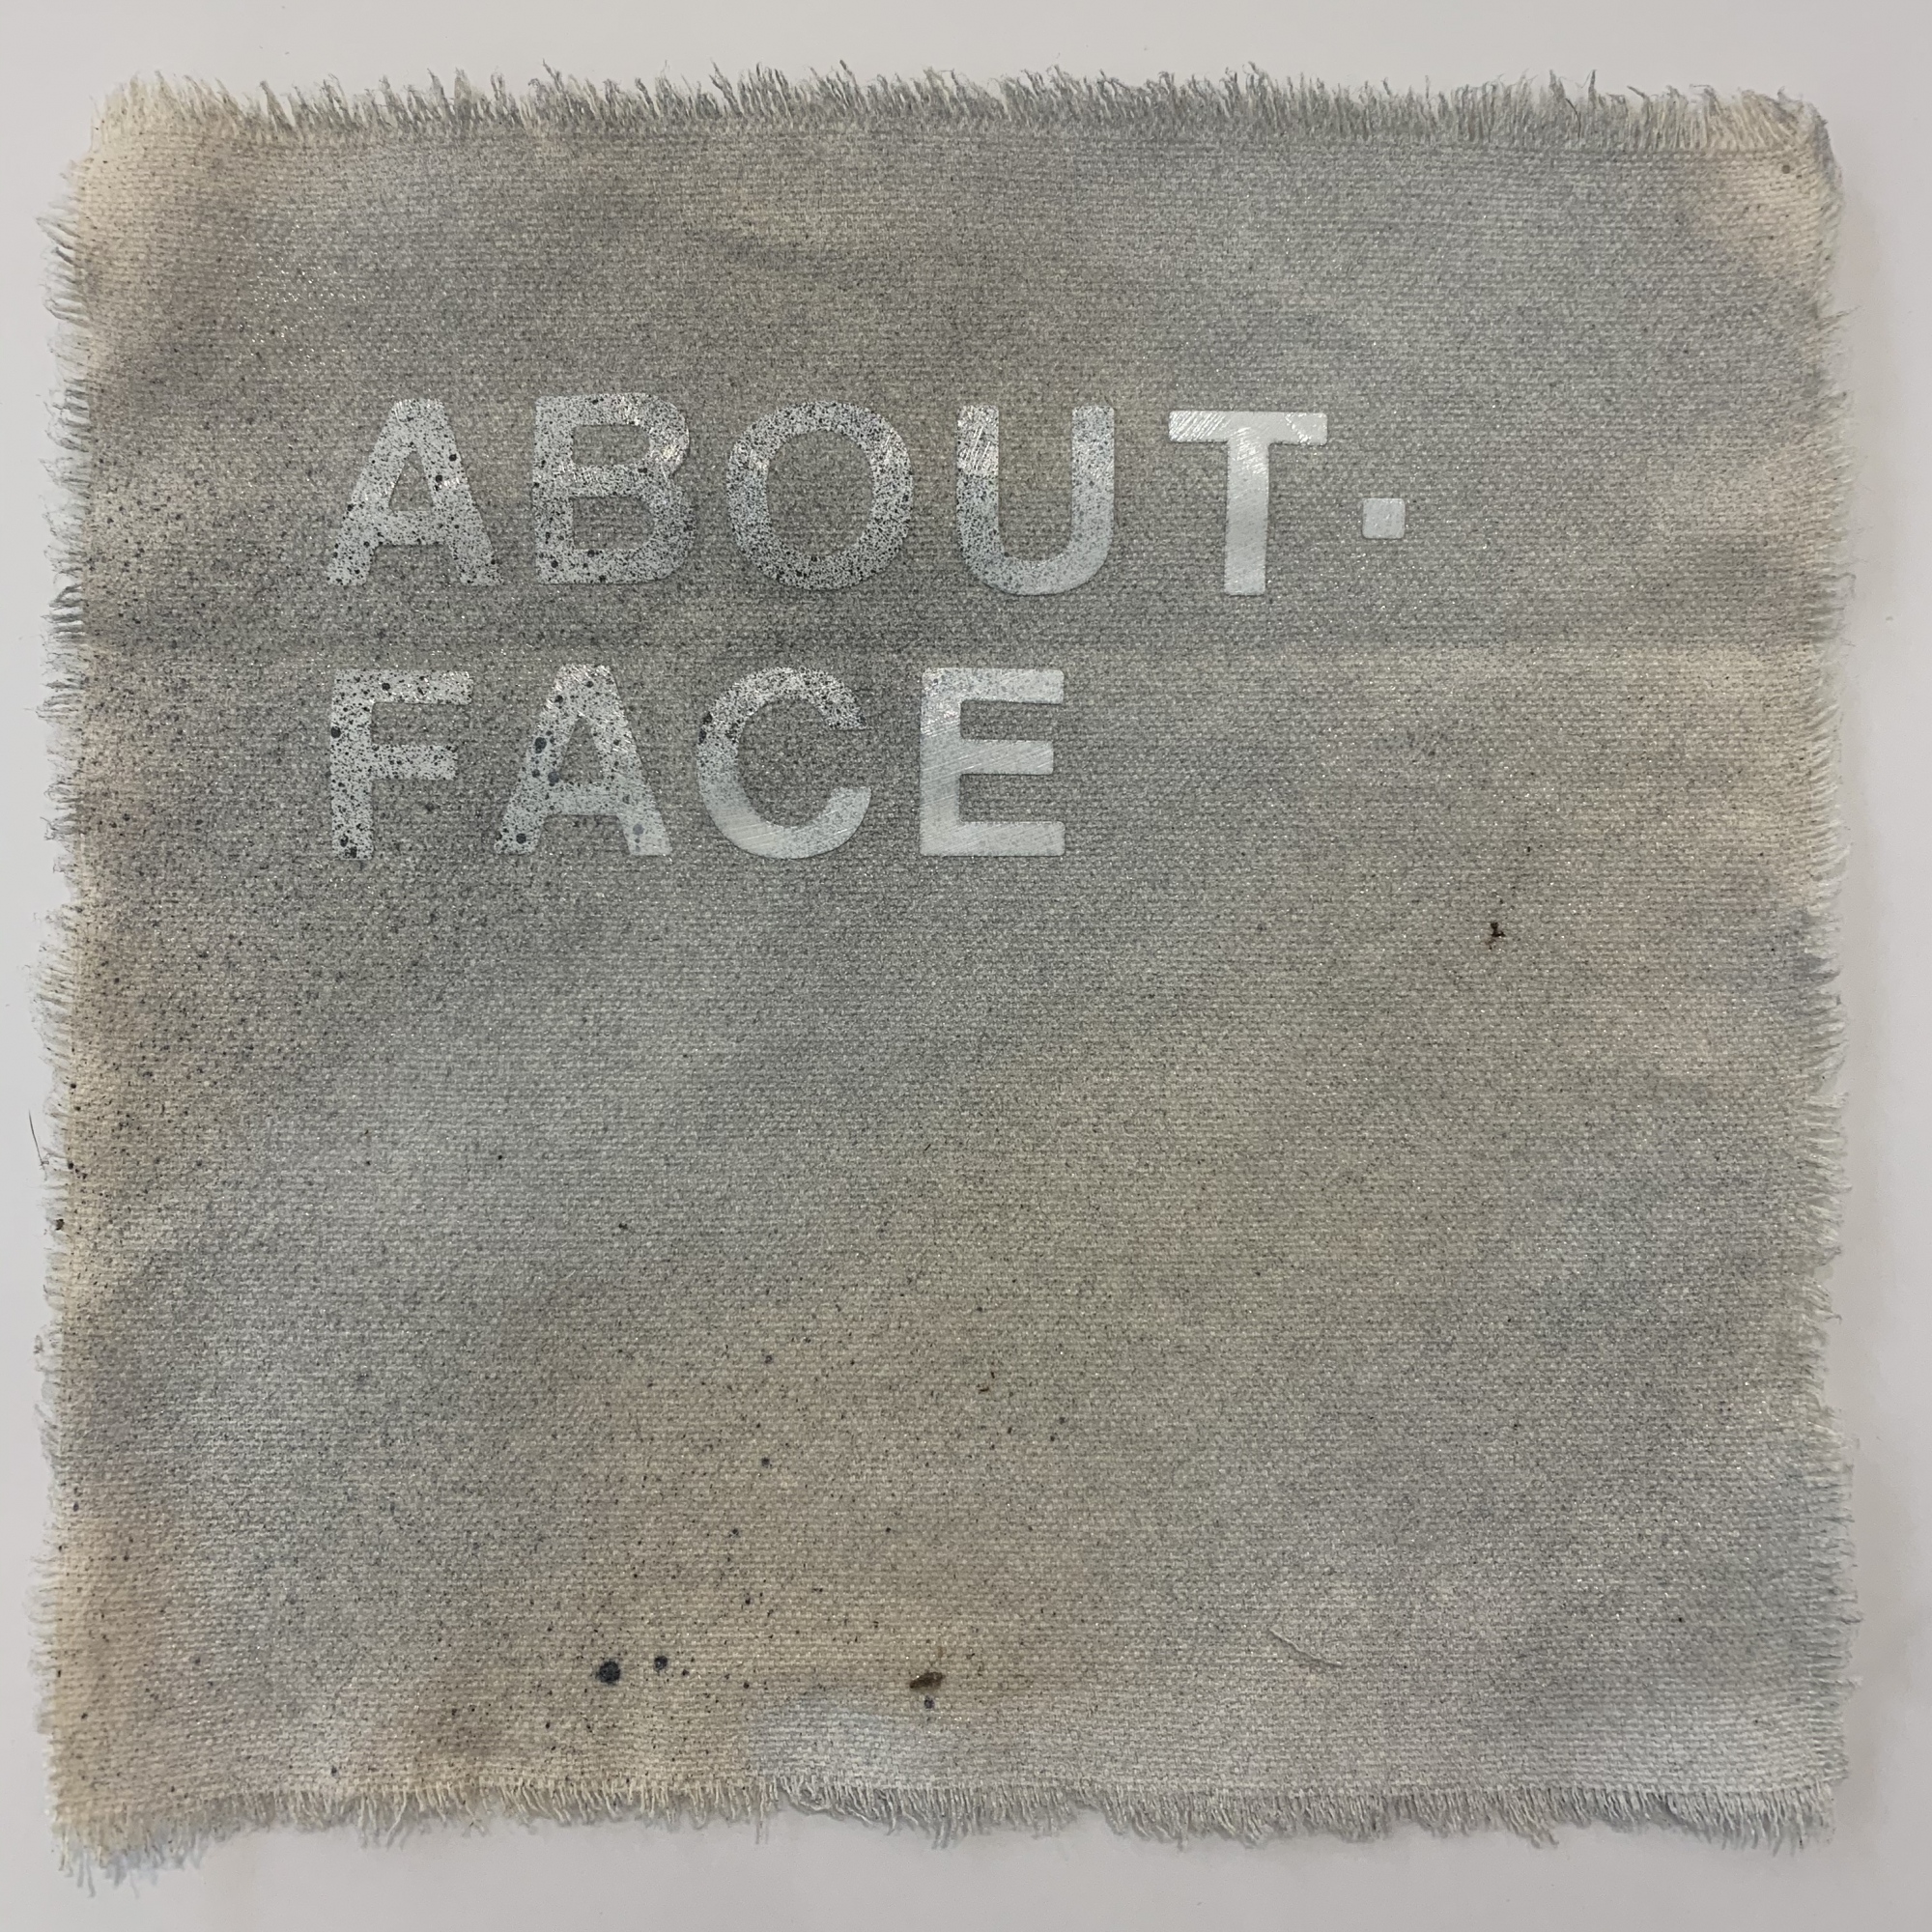 About Face by Moira Ness